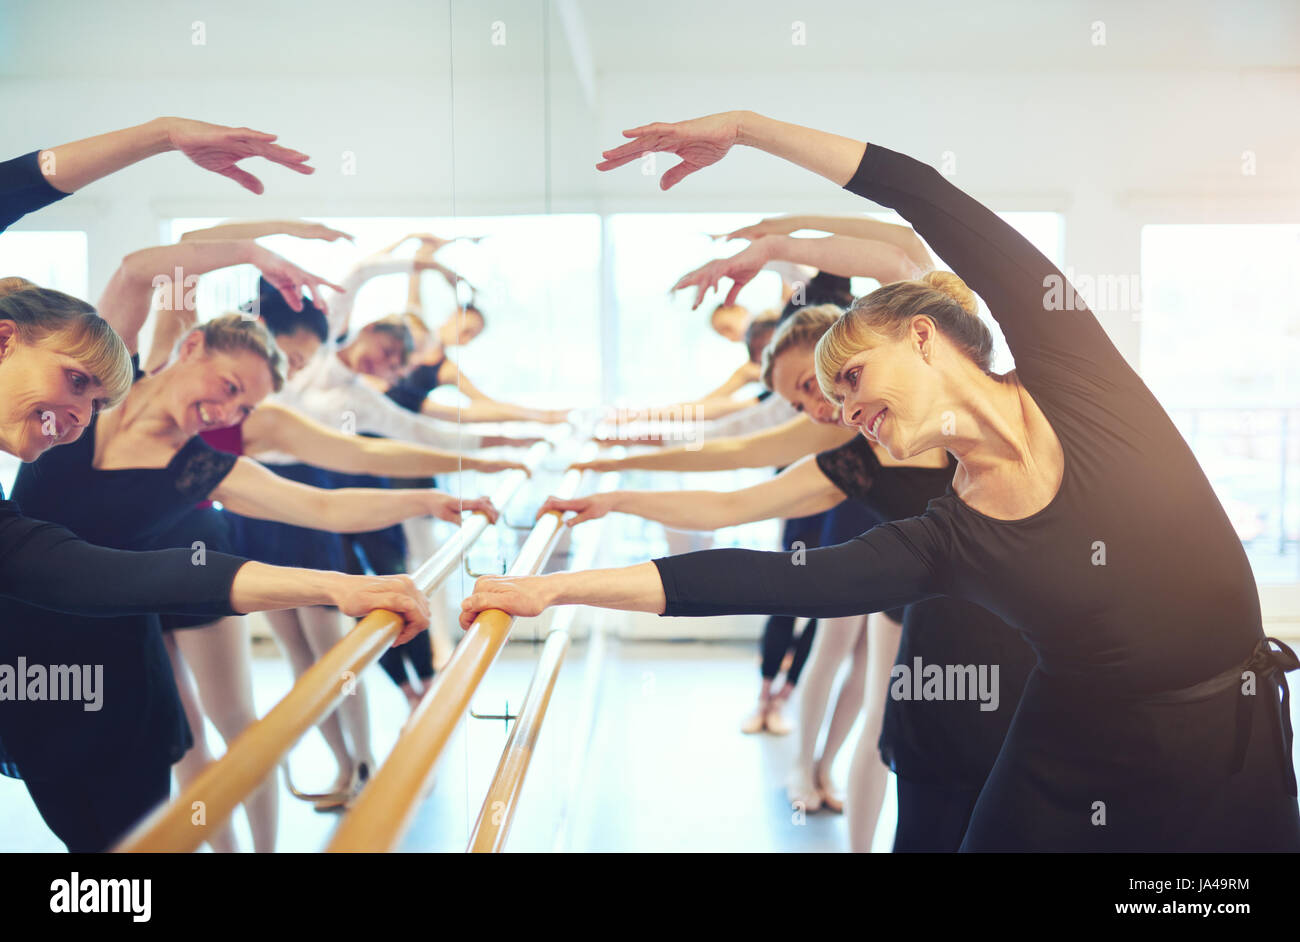 Cheerful mature ballerinas stretching with hands up standing at mirror in ballet class. Stock Photo